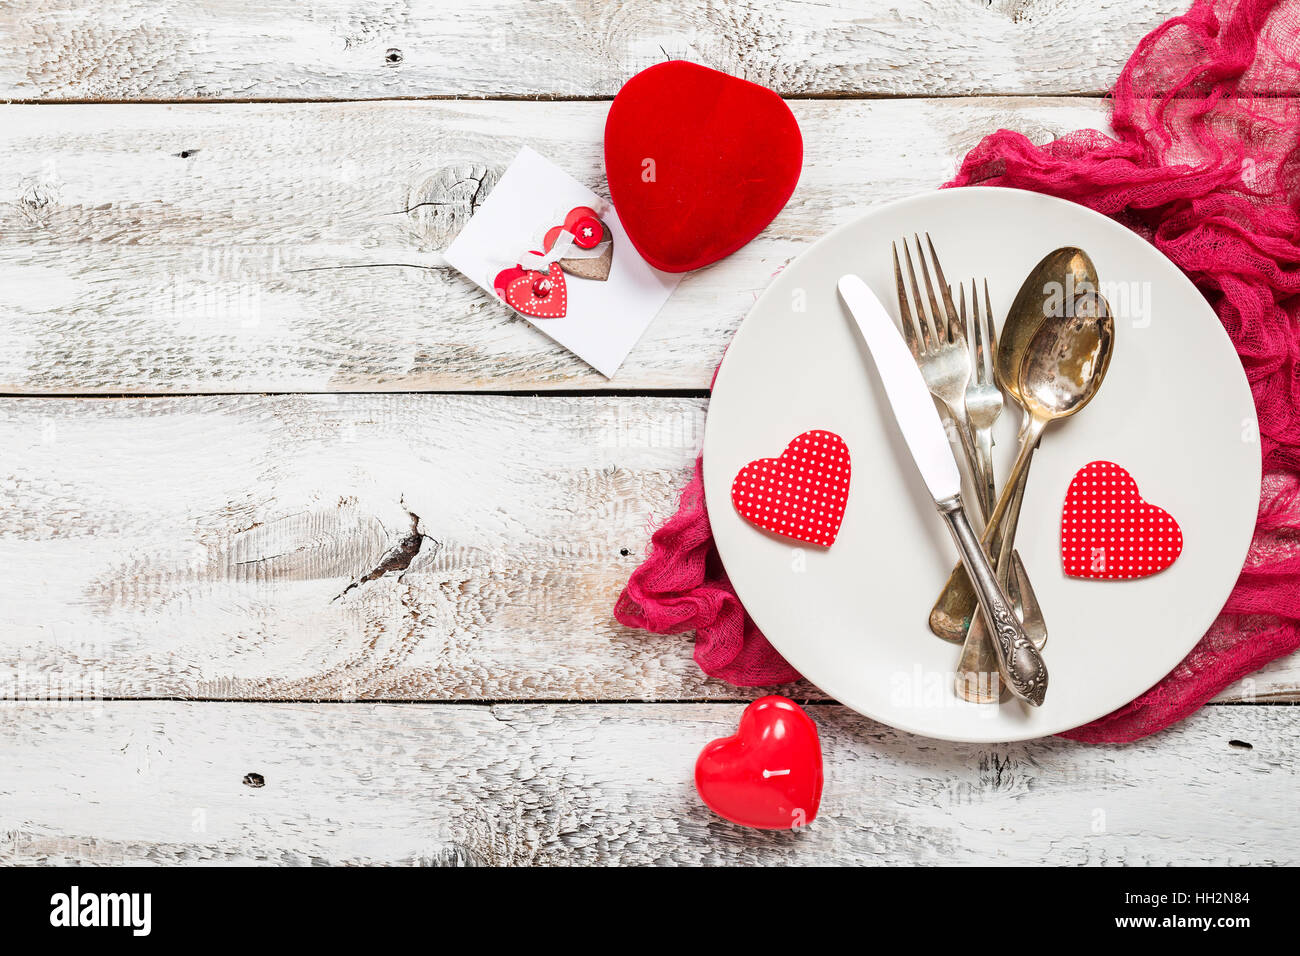 Valentine\'s day table setting. Table set with plate, knife, spoon ...